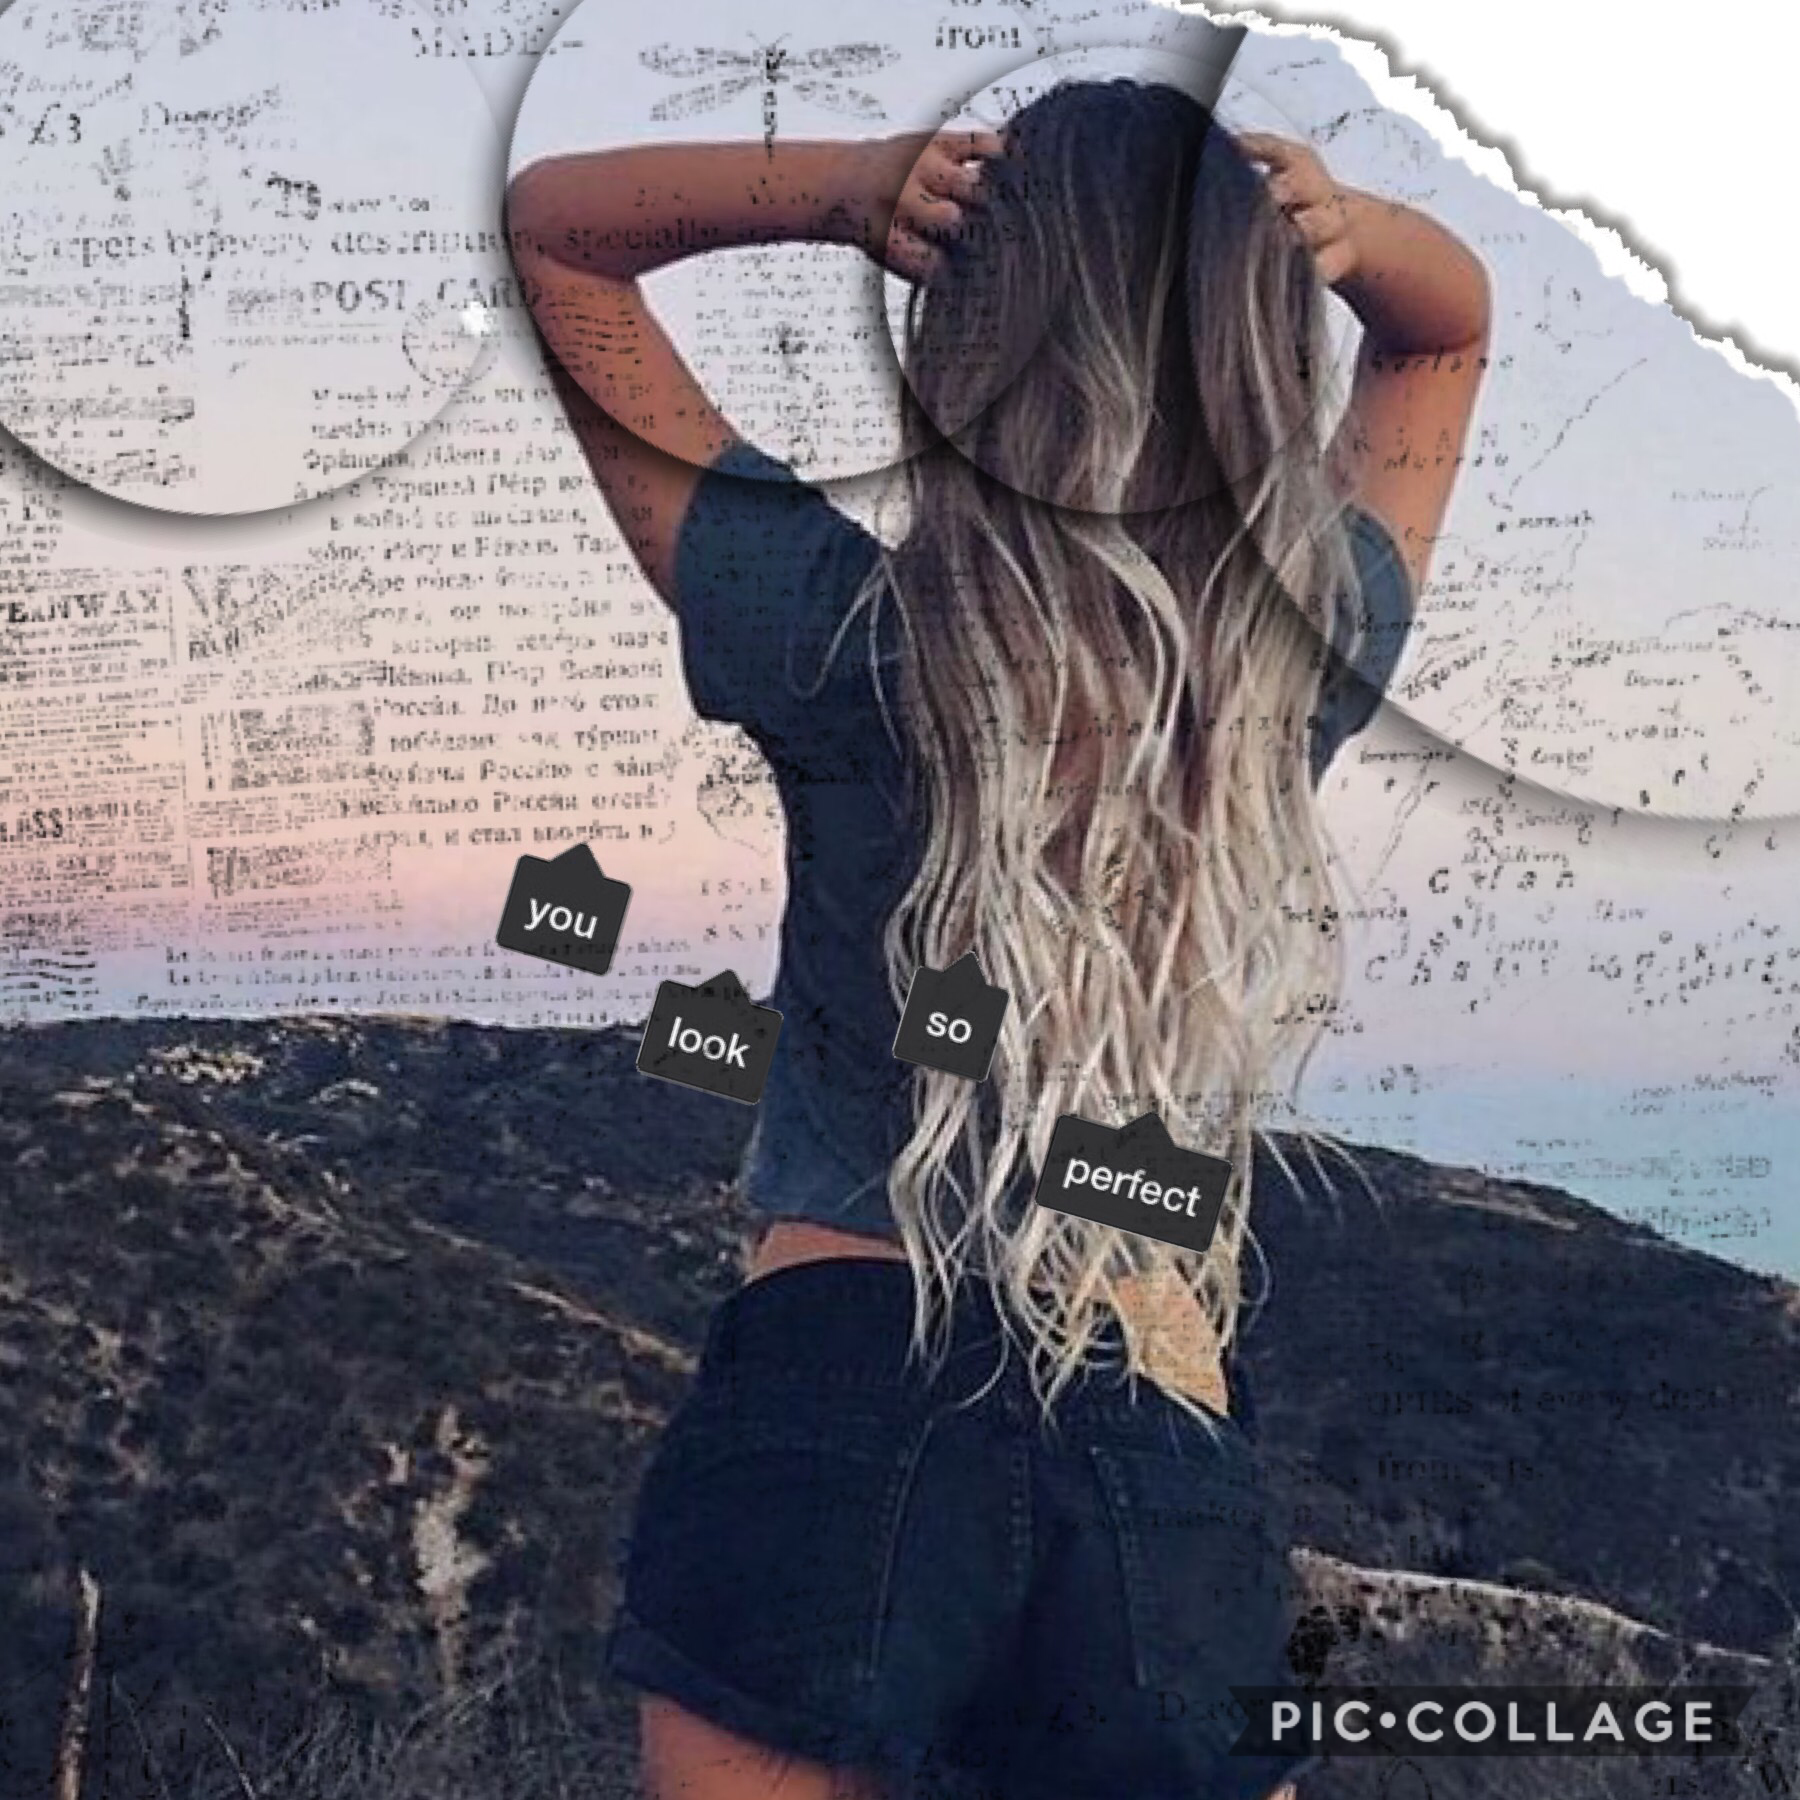 Collage by danikajessup